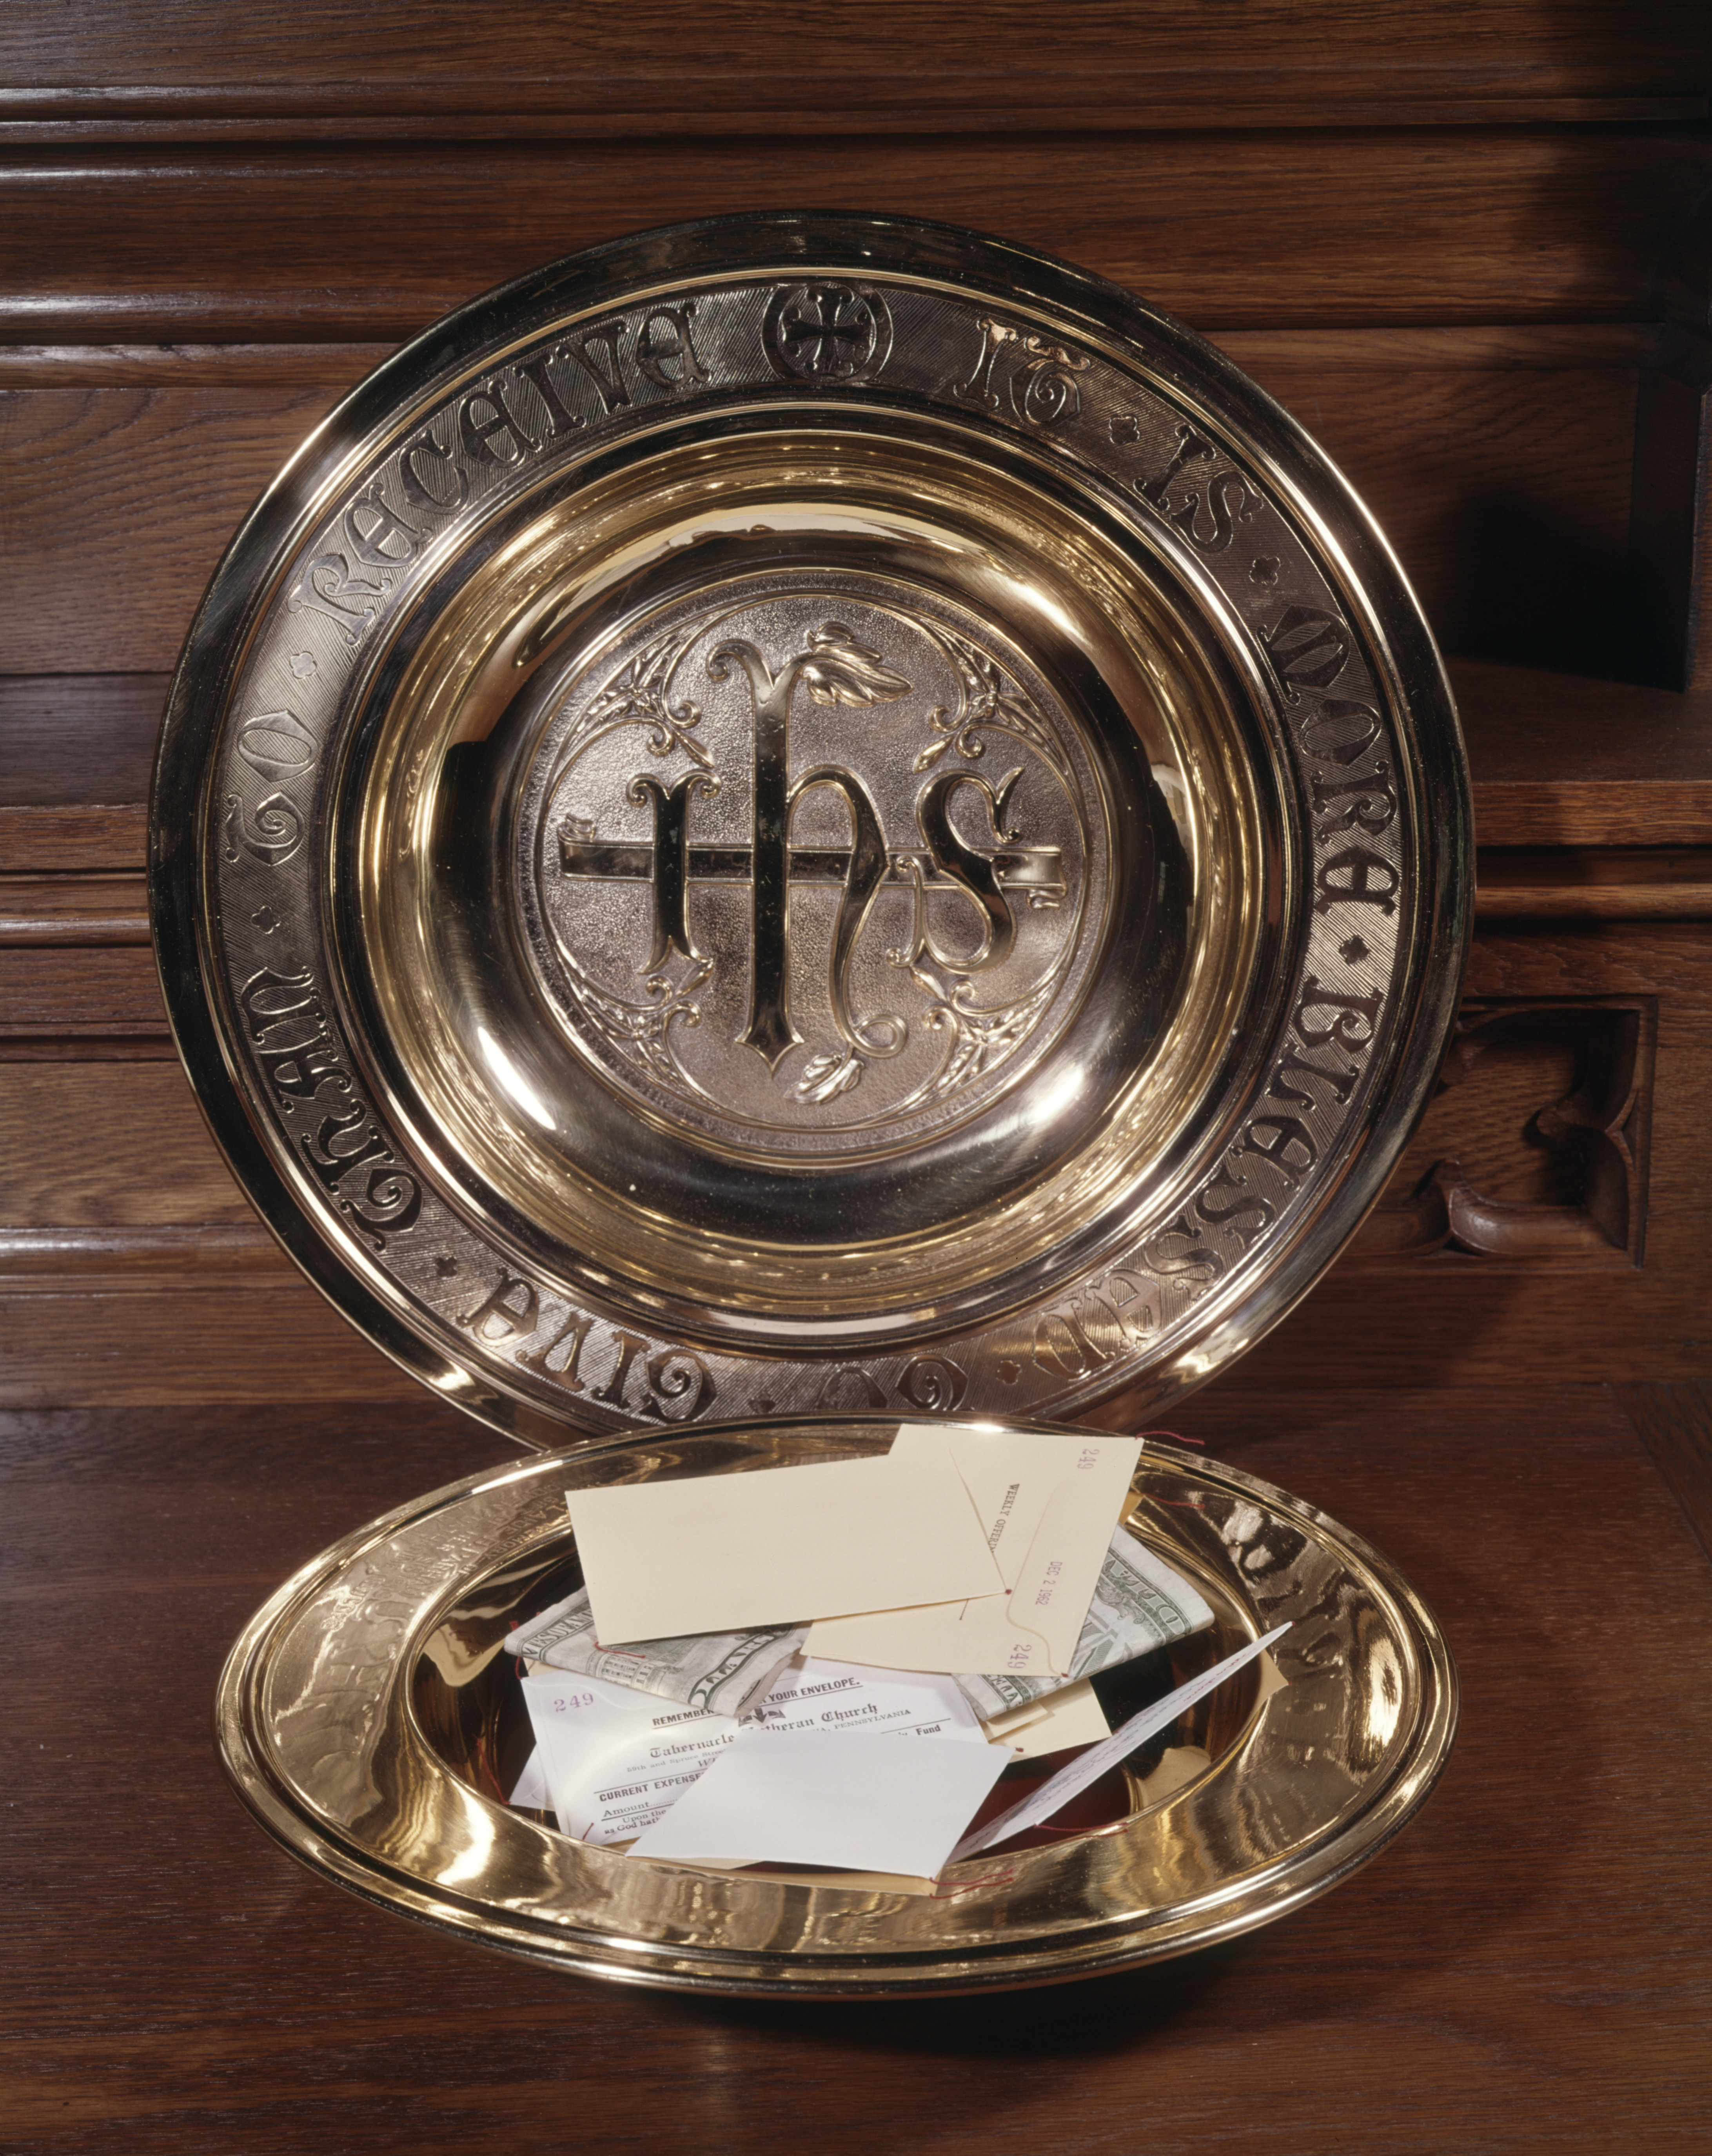 Collection Plate Used At Church Mass.